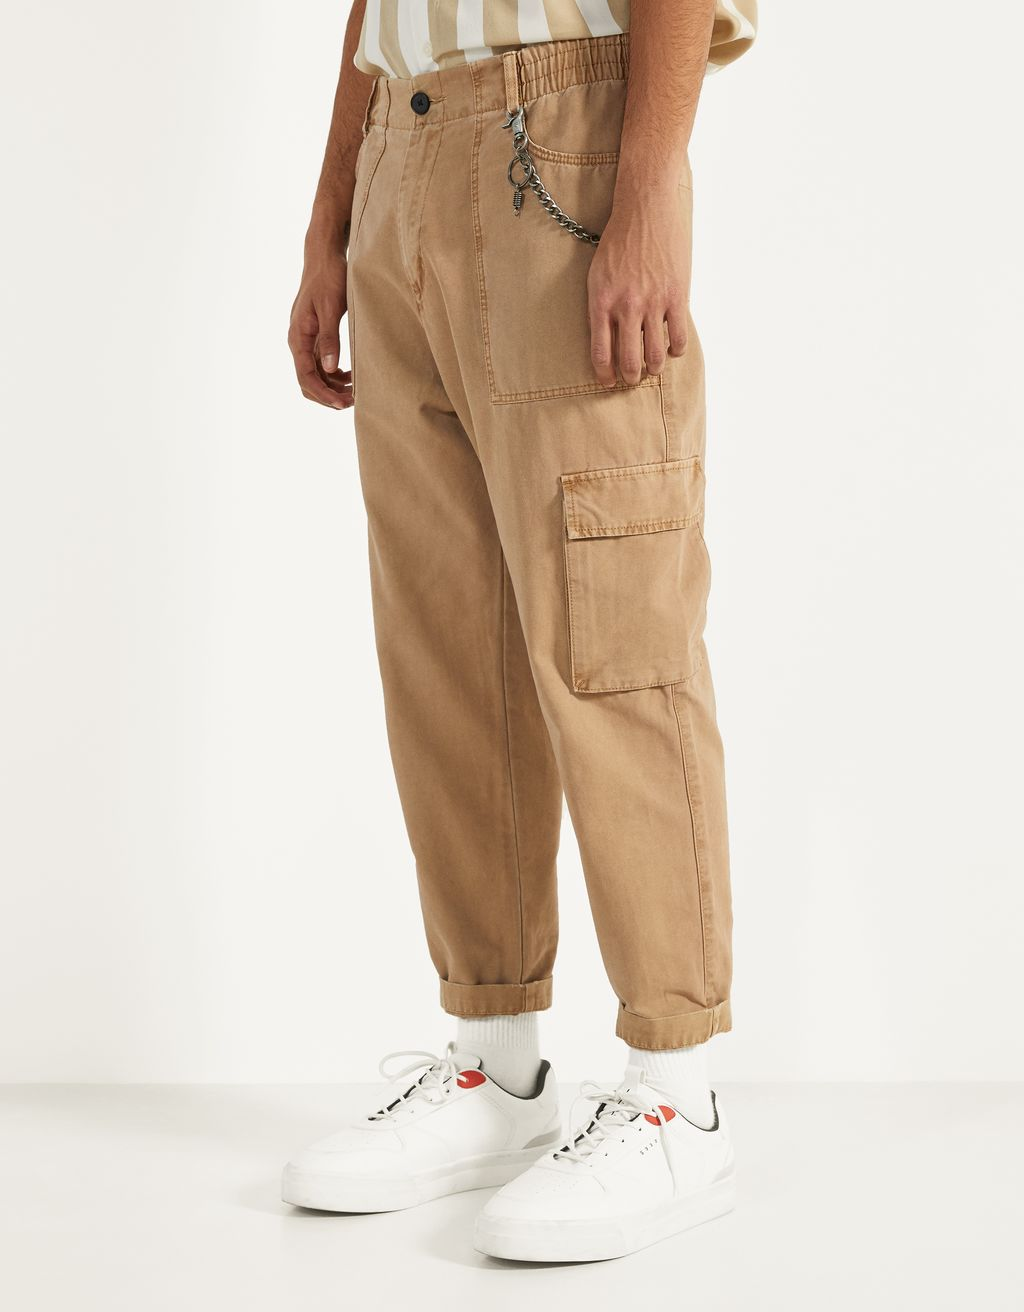 Cargo pants with chain